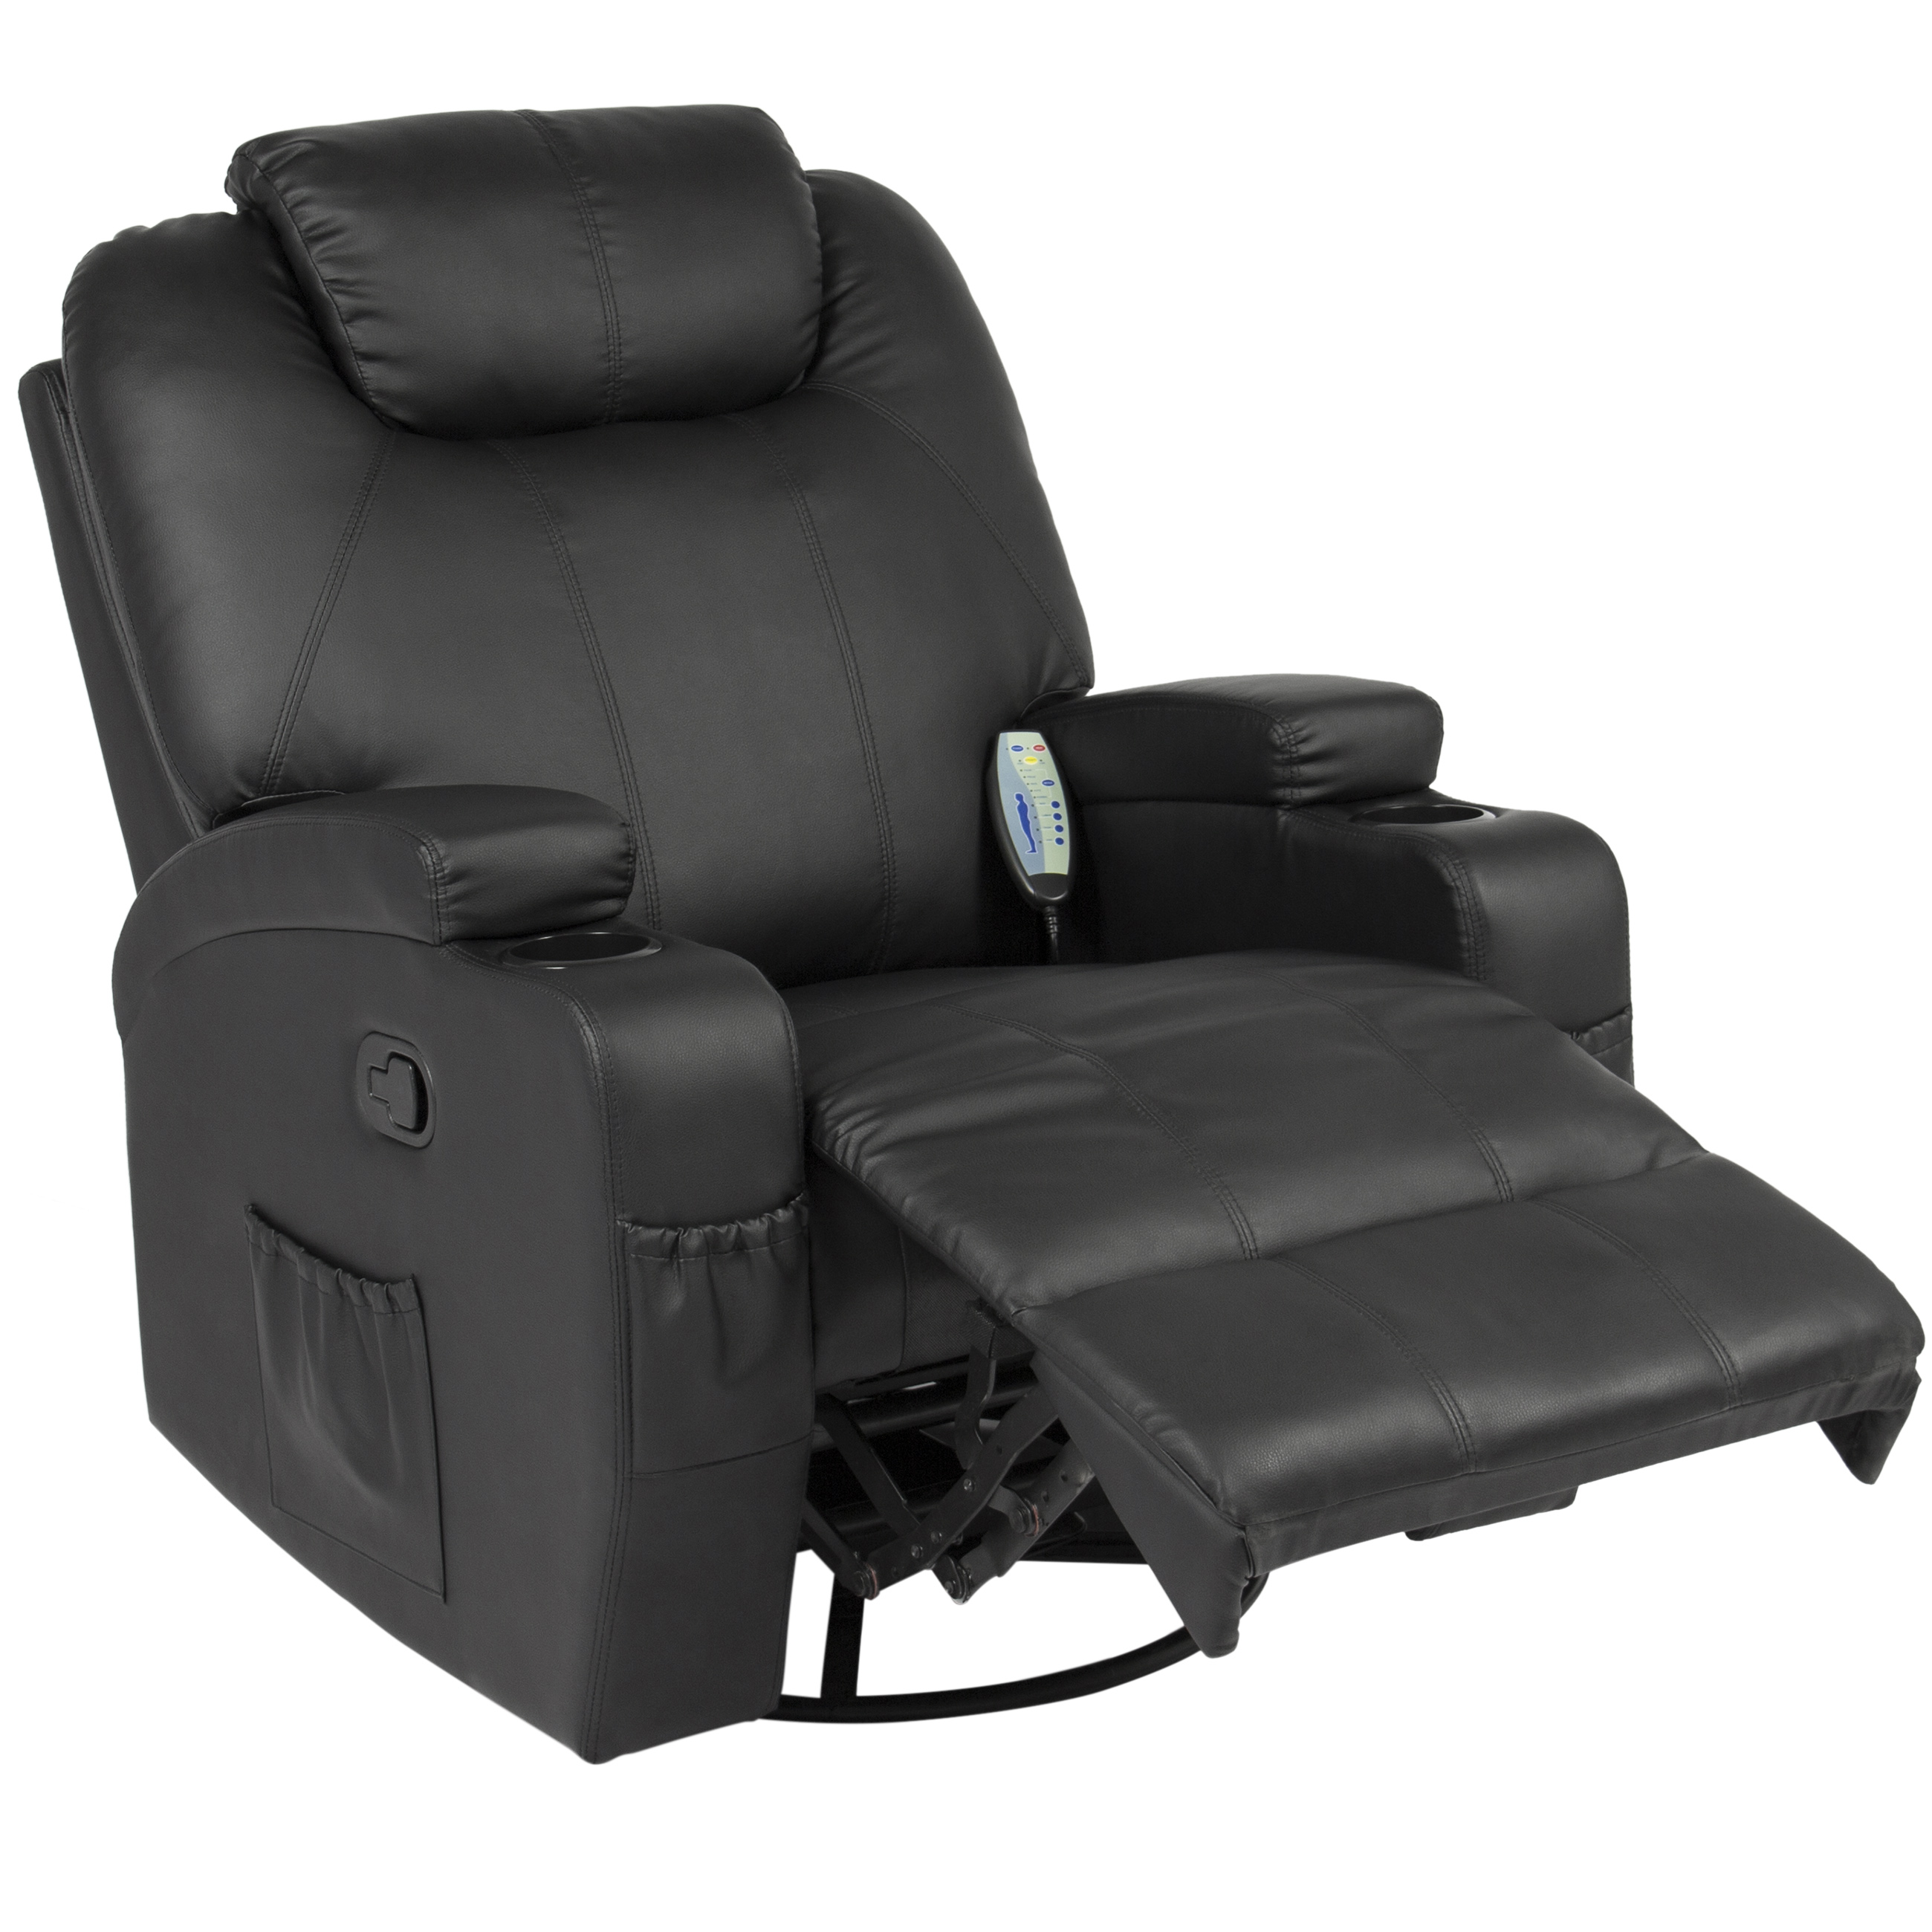 High Quality Best Choice Products Executive Swivel Massage Recliner W/ Control, 5 Heat U0026  Massage Modes, 2 Cup Holders, 92lbs (Black)   Walmart.com